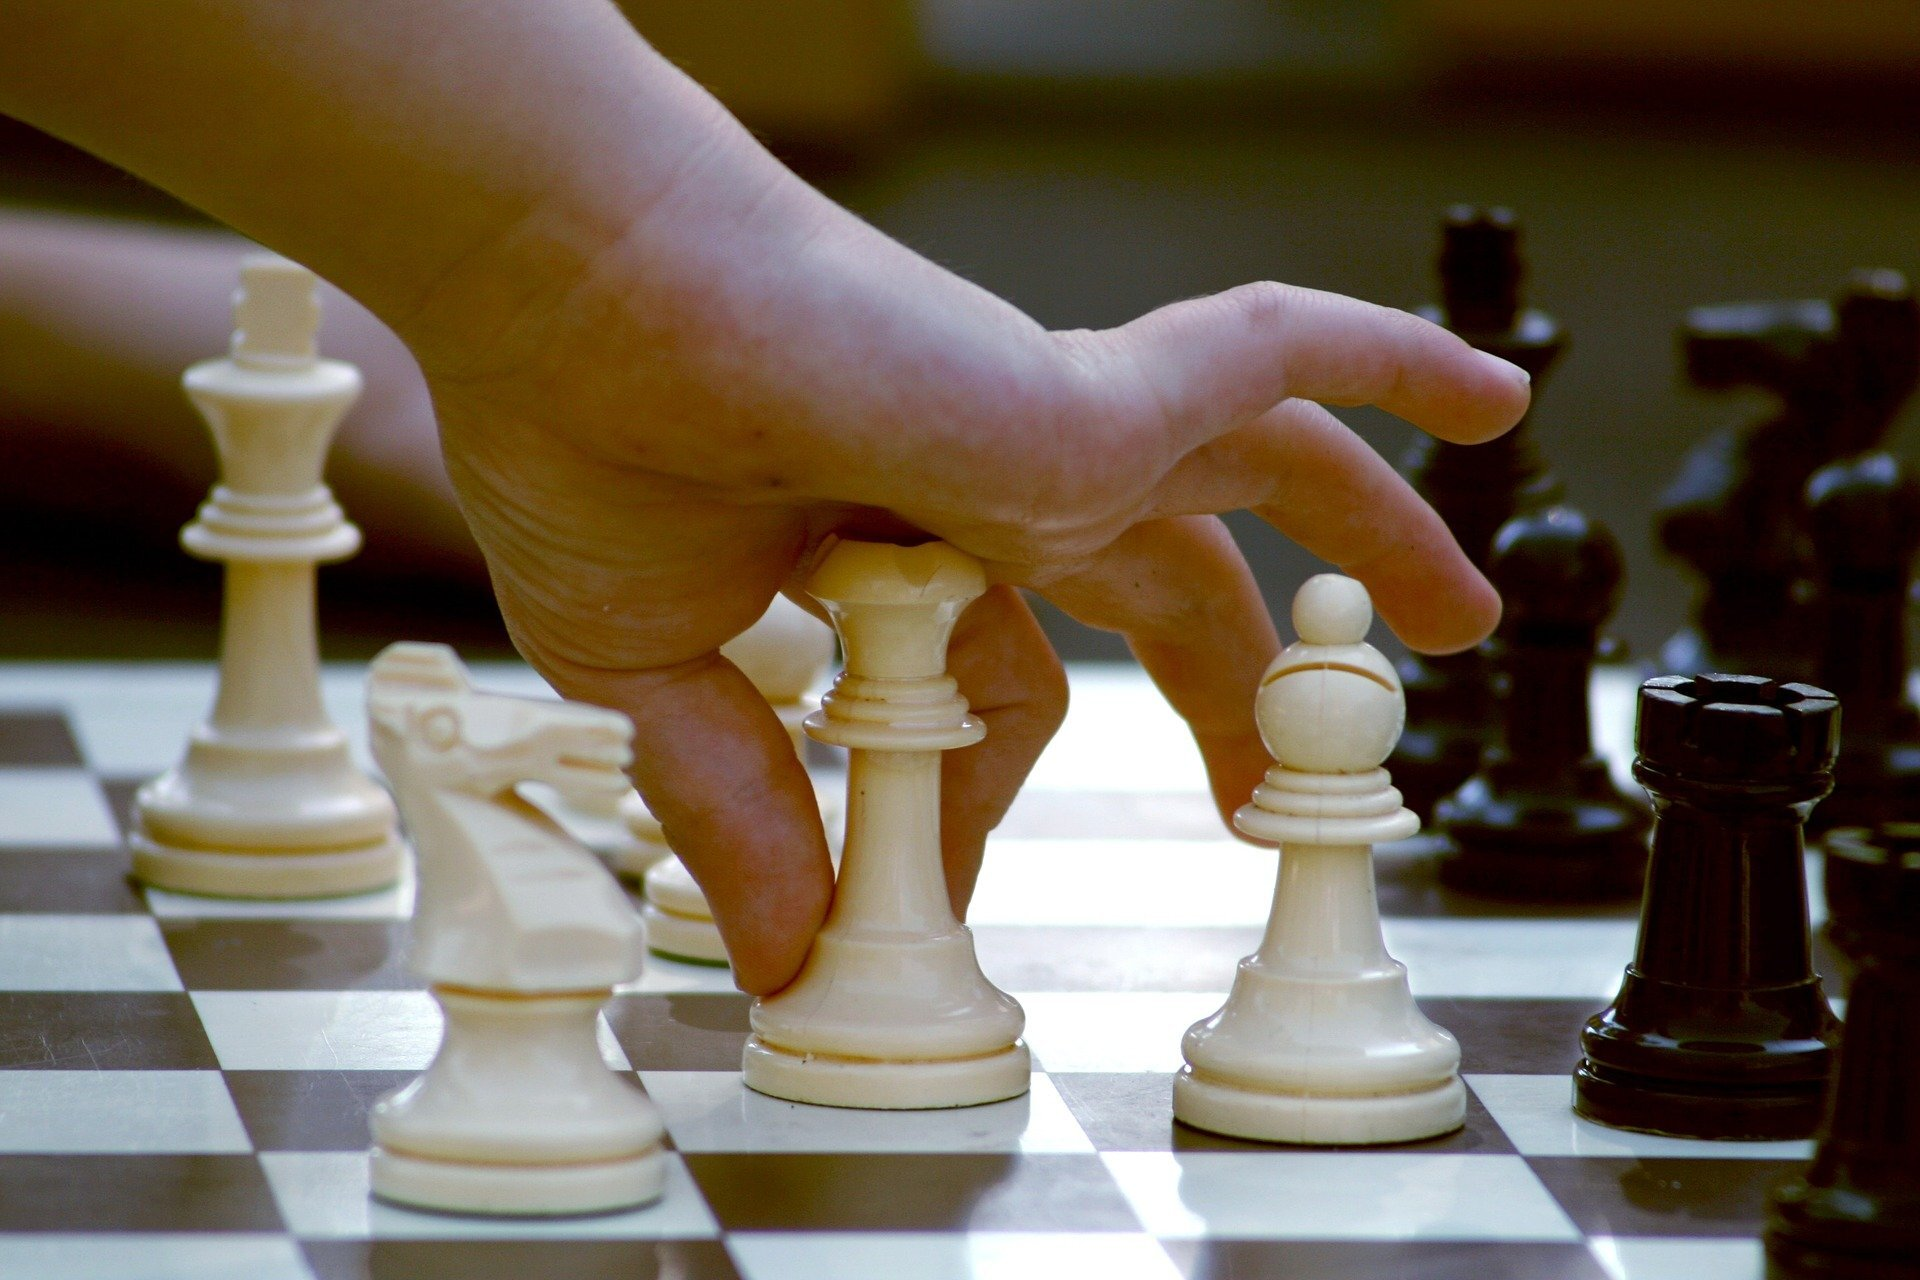 Teaching children to play chess found to decrease risk aversion